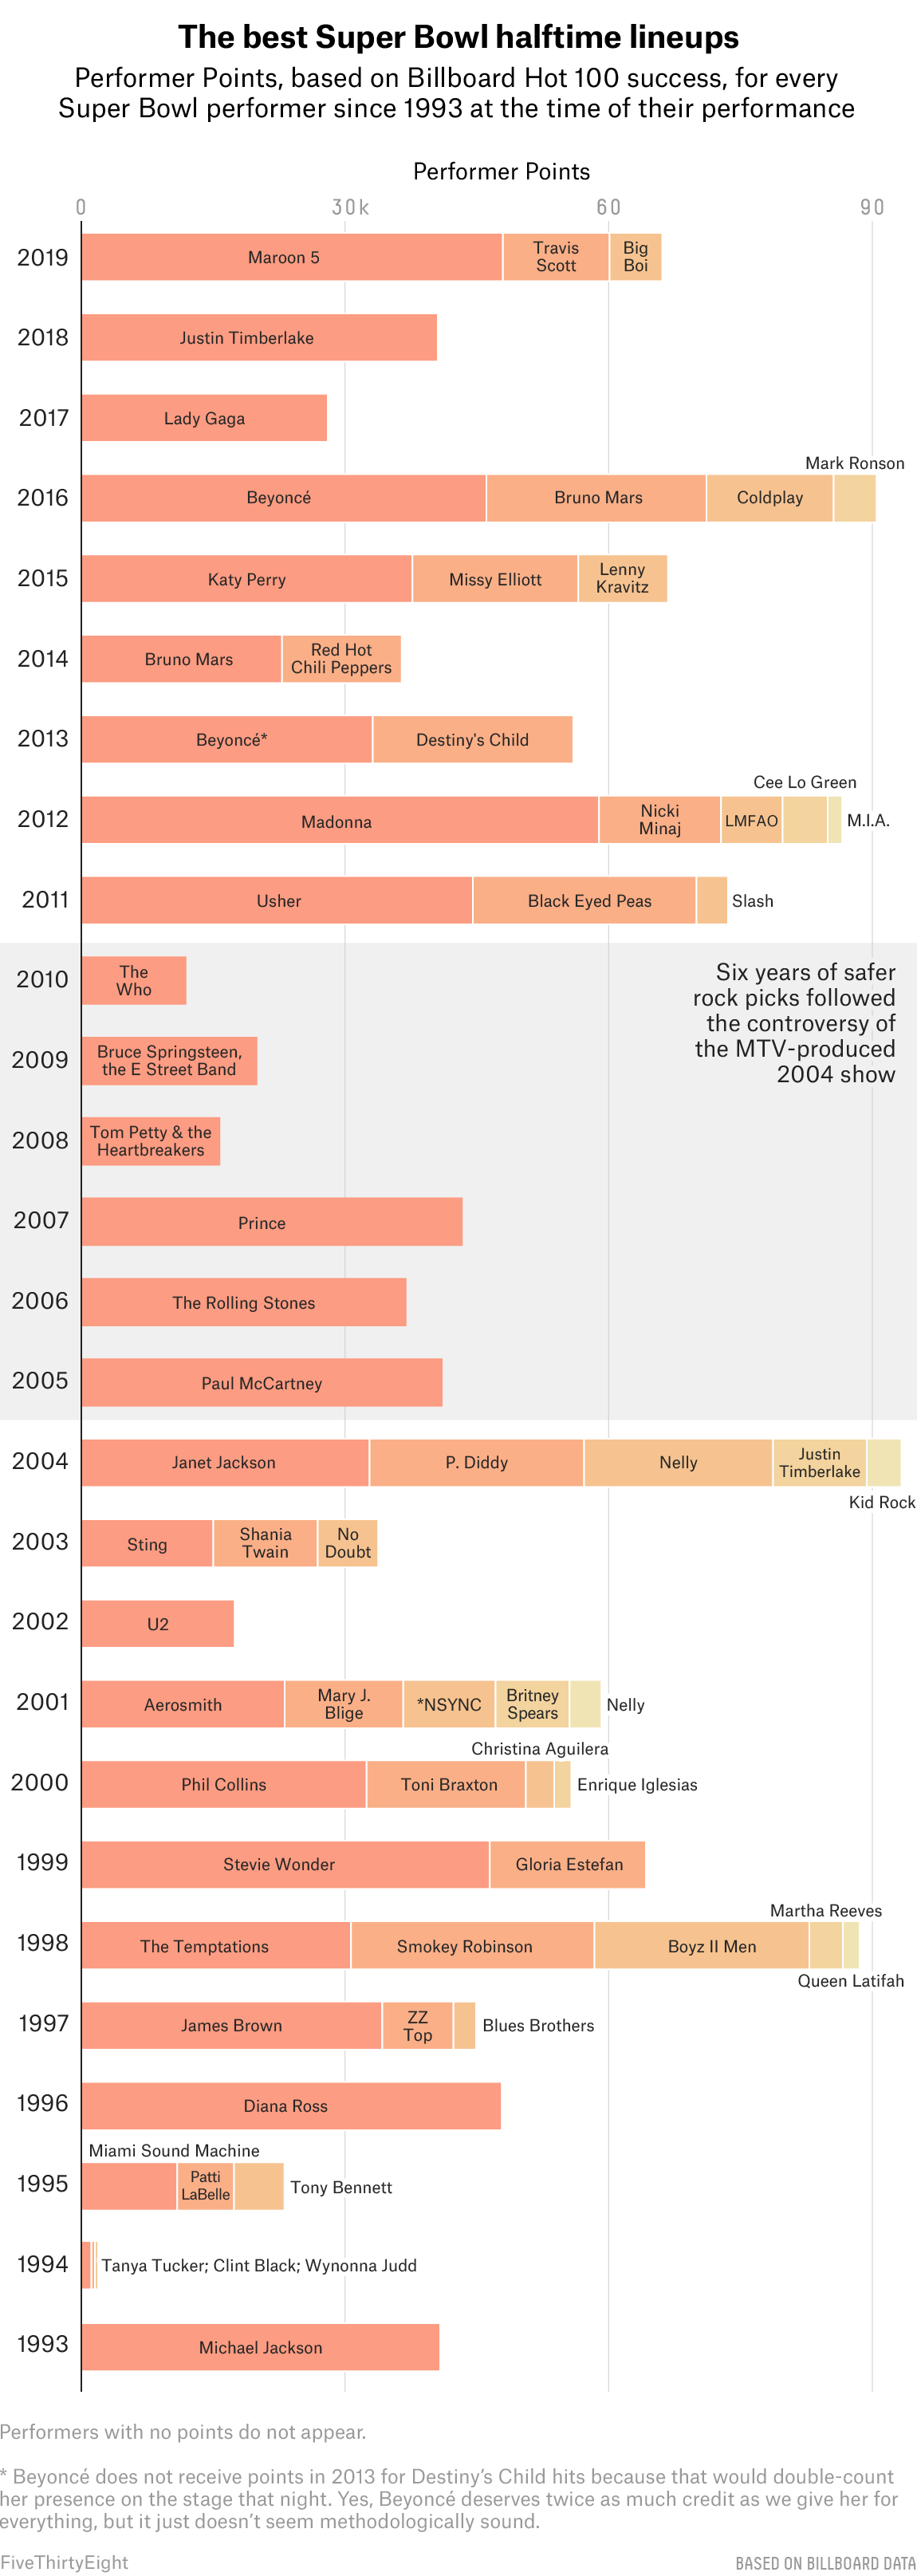 25 Years Of Super Bowl Halftime Show Lineups, Ranked